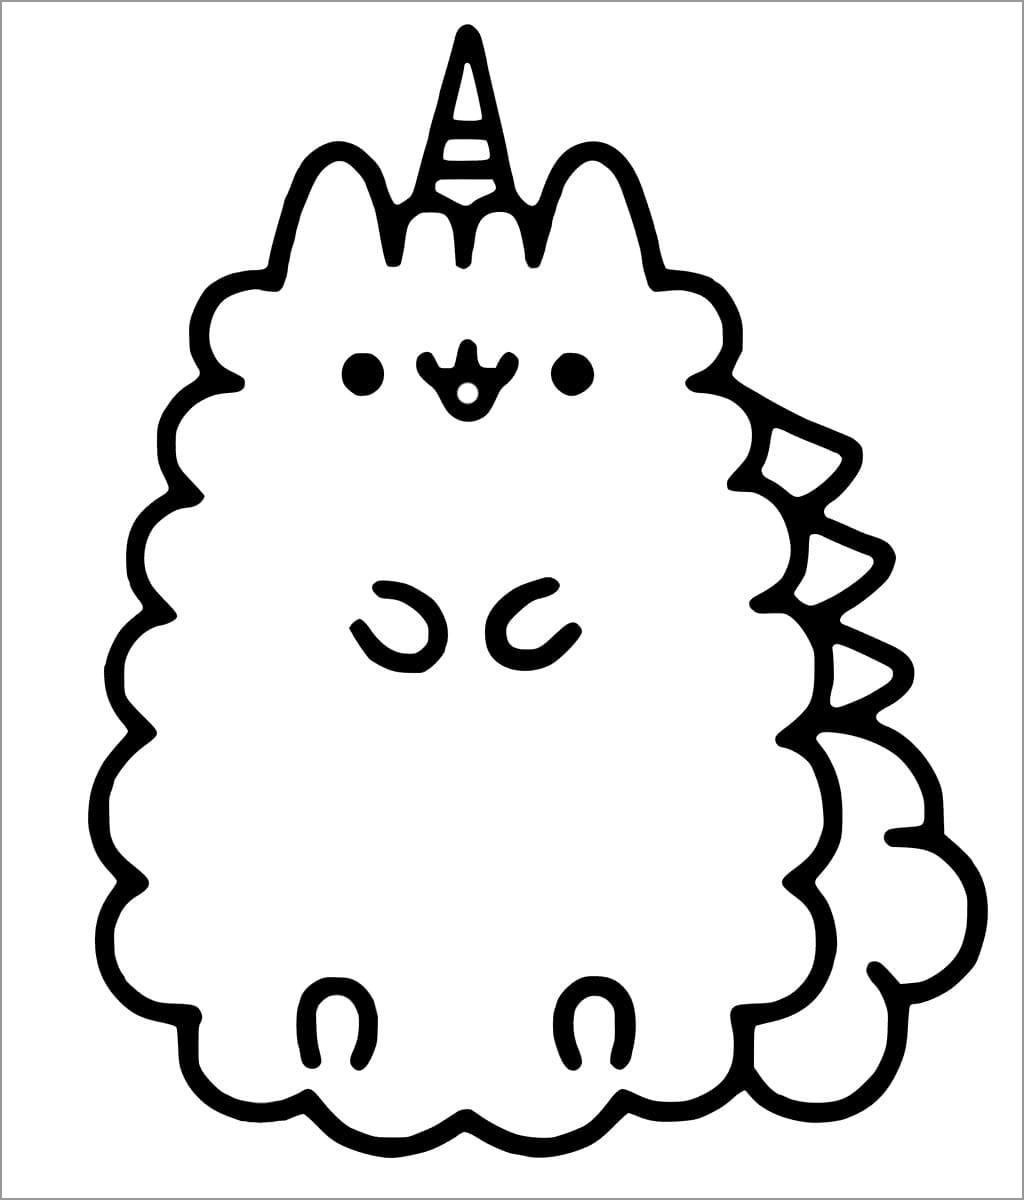 donut pusheen cat coloring pages coloring and drawing kawaii colouring page pusheen the cat coloring pages donut pusheen